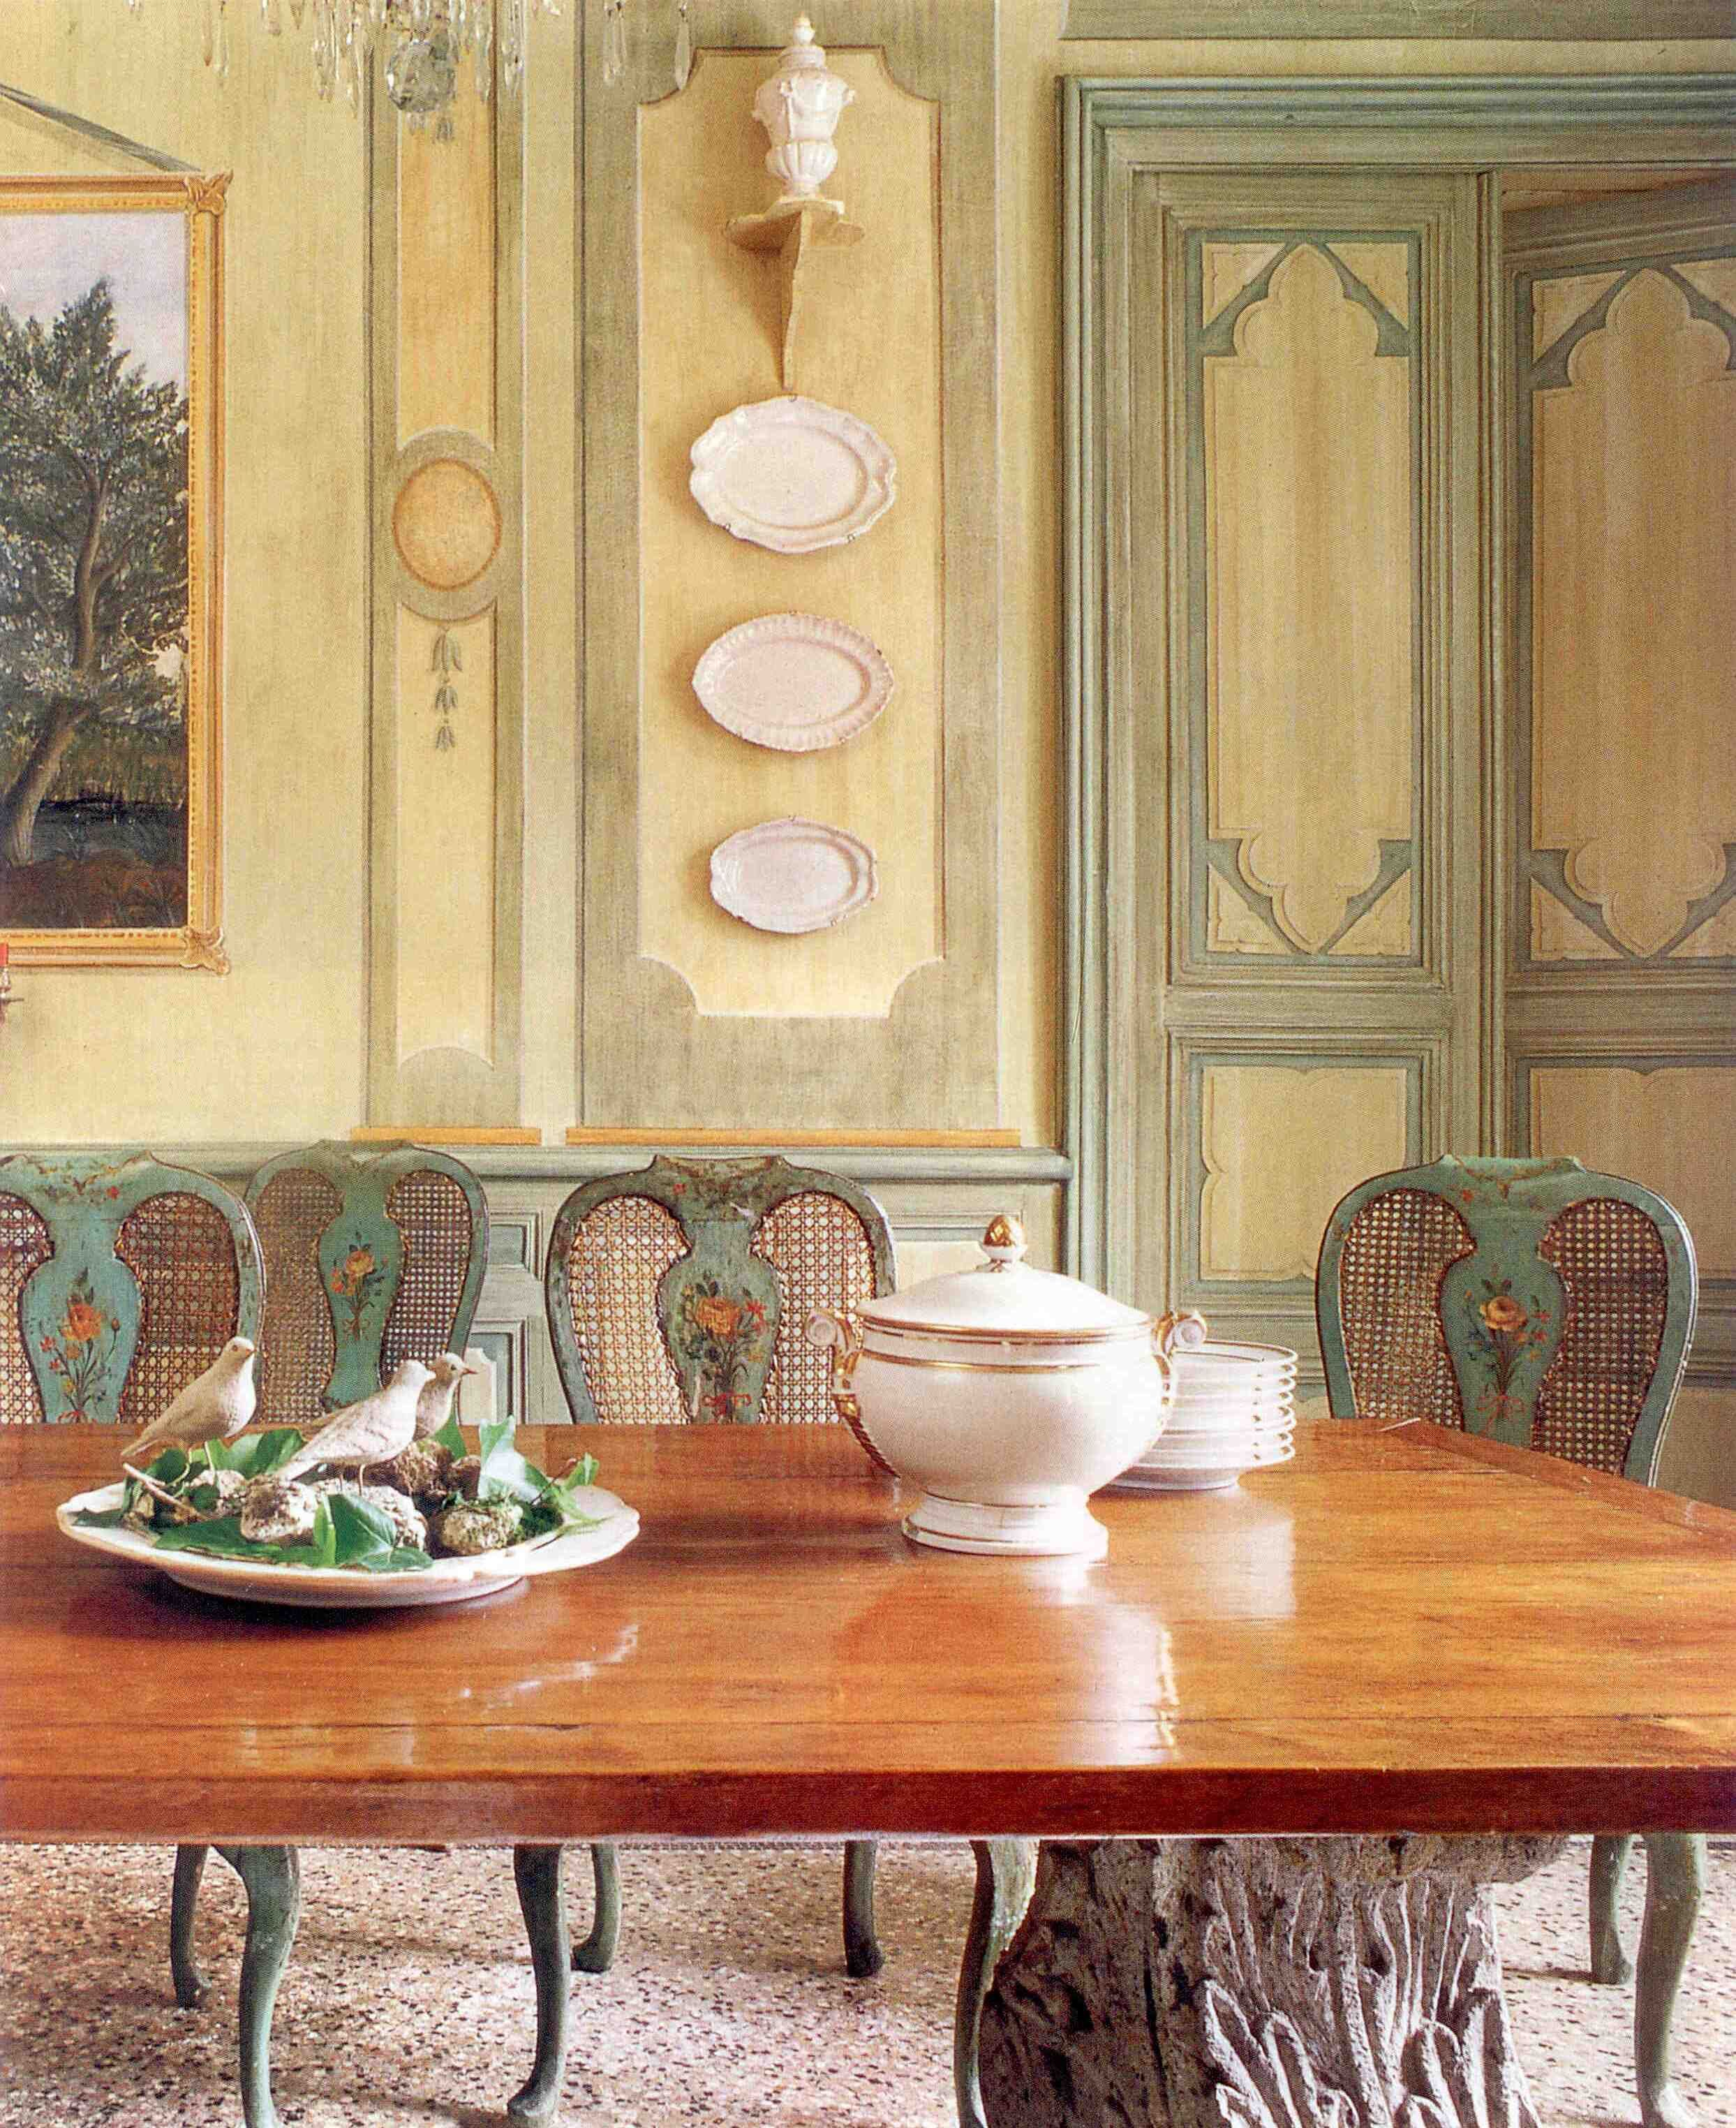 Jean-Loup Daraux - South of France | Romantic | Pinterest | France ...